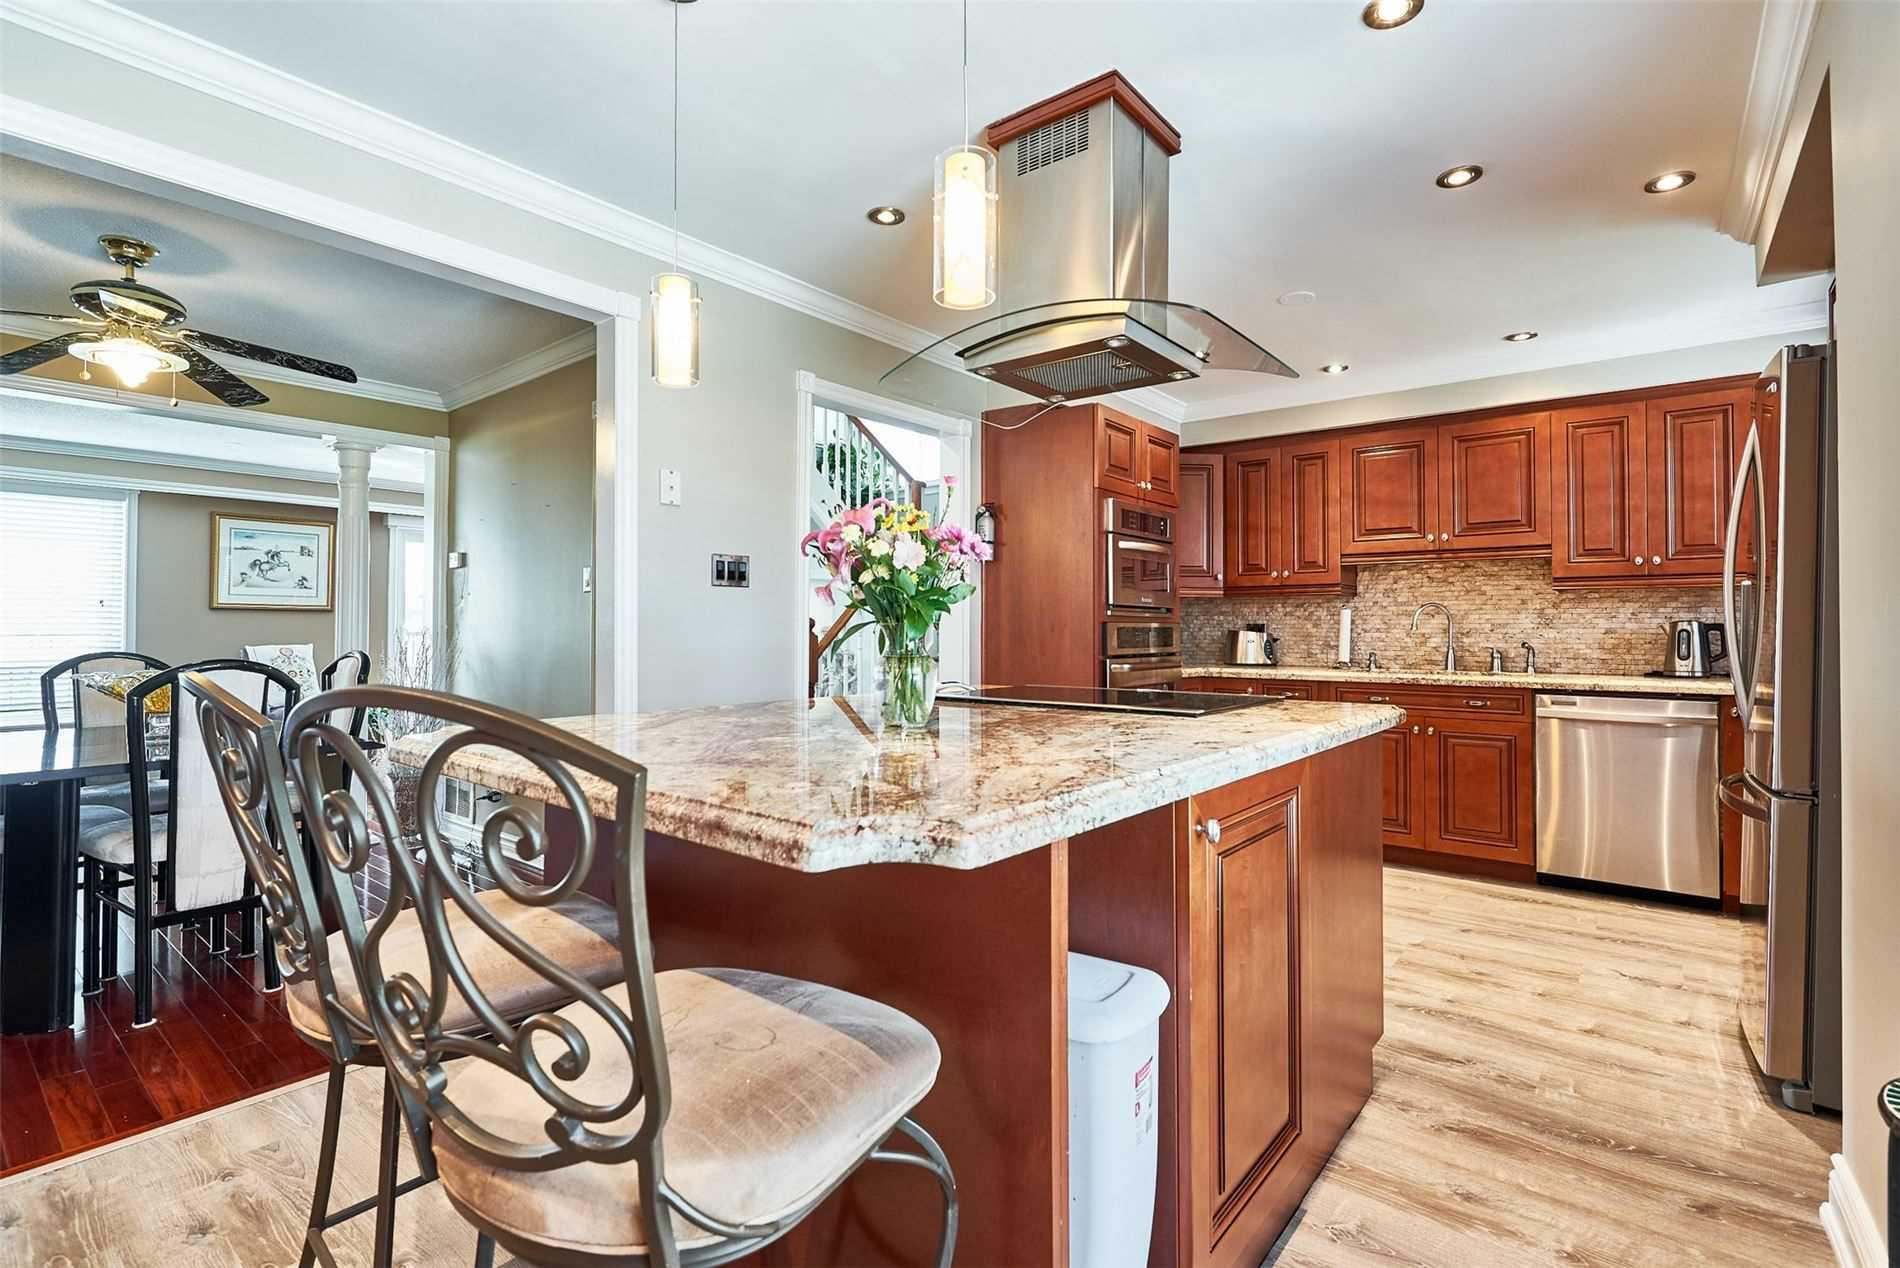 Image 2 of 33 showing inside of 3 Bedroom Condo Townhouse 2-Storey for Sale at 33 Clover Ridge Dr W Unit# 9, Ajax L1S3M5